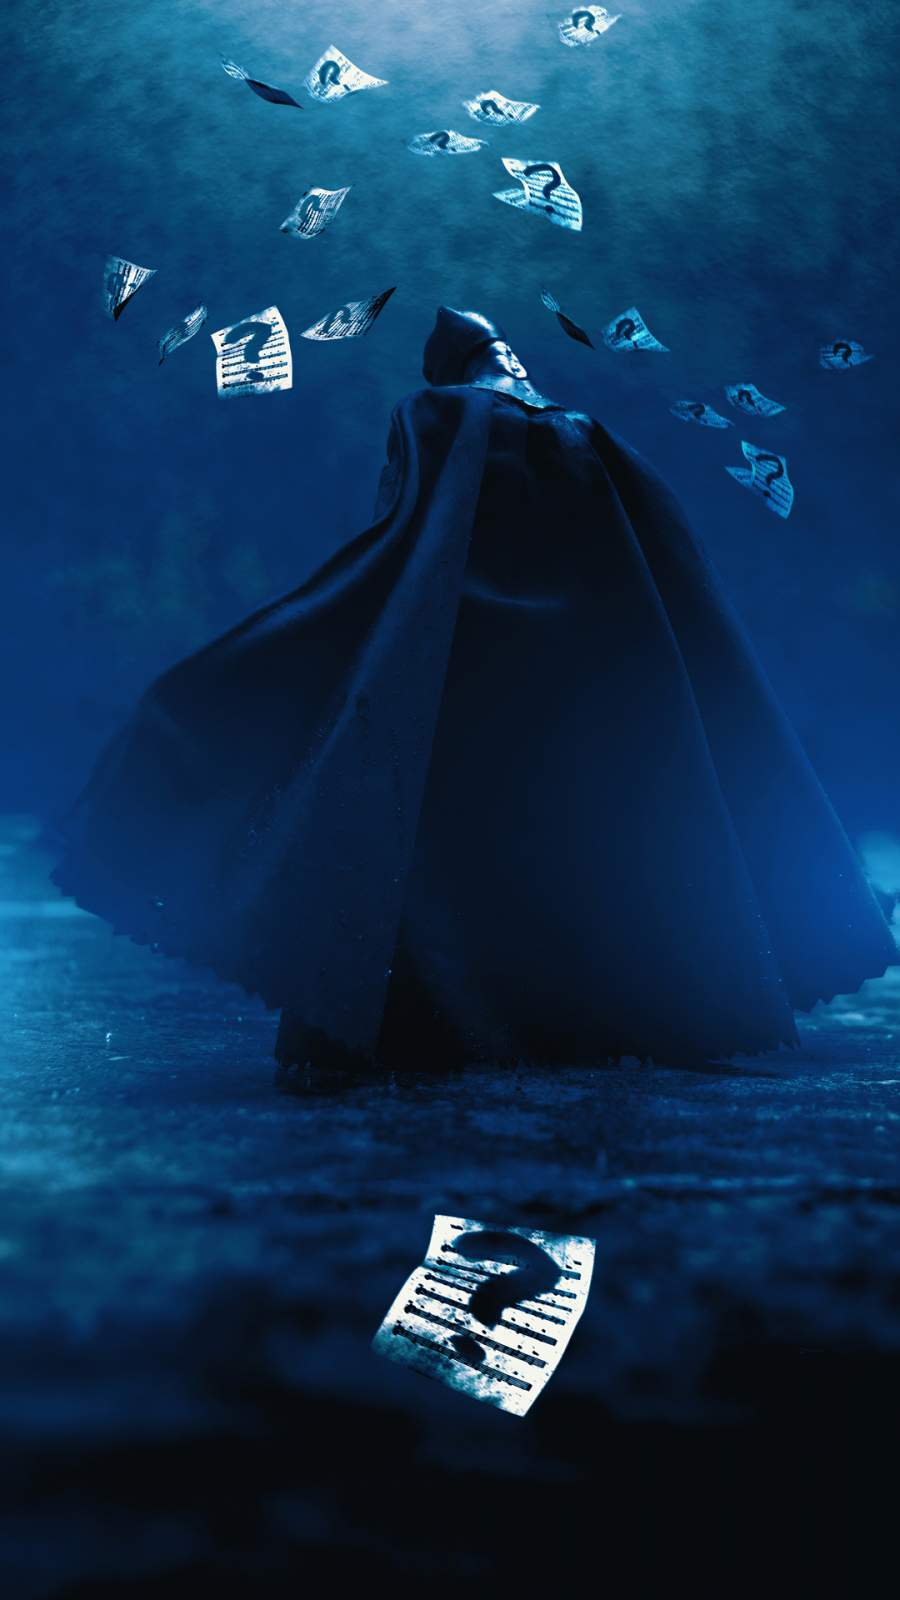 Batman Nights iPhone Wallpaper